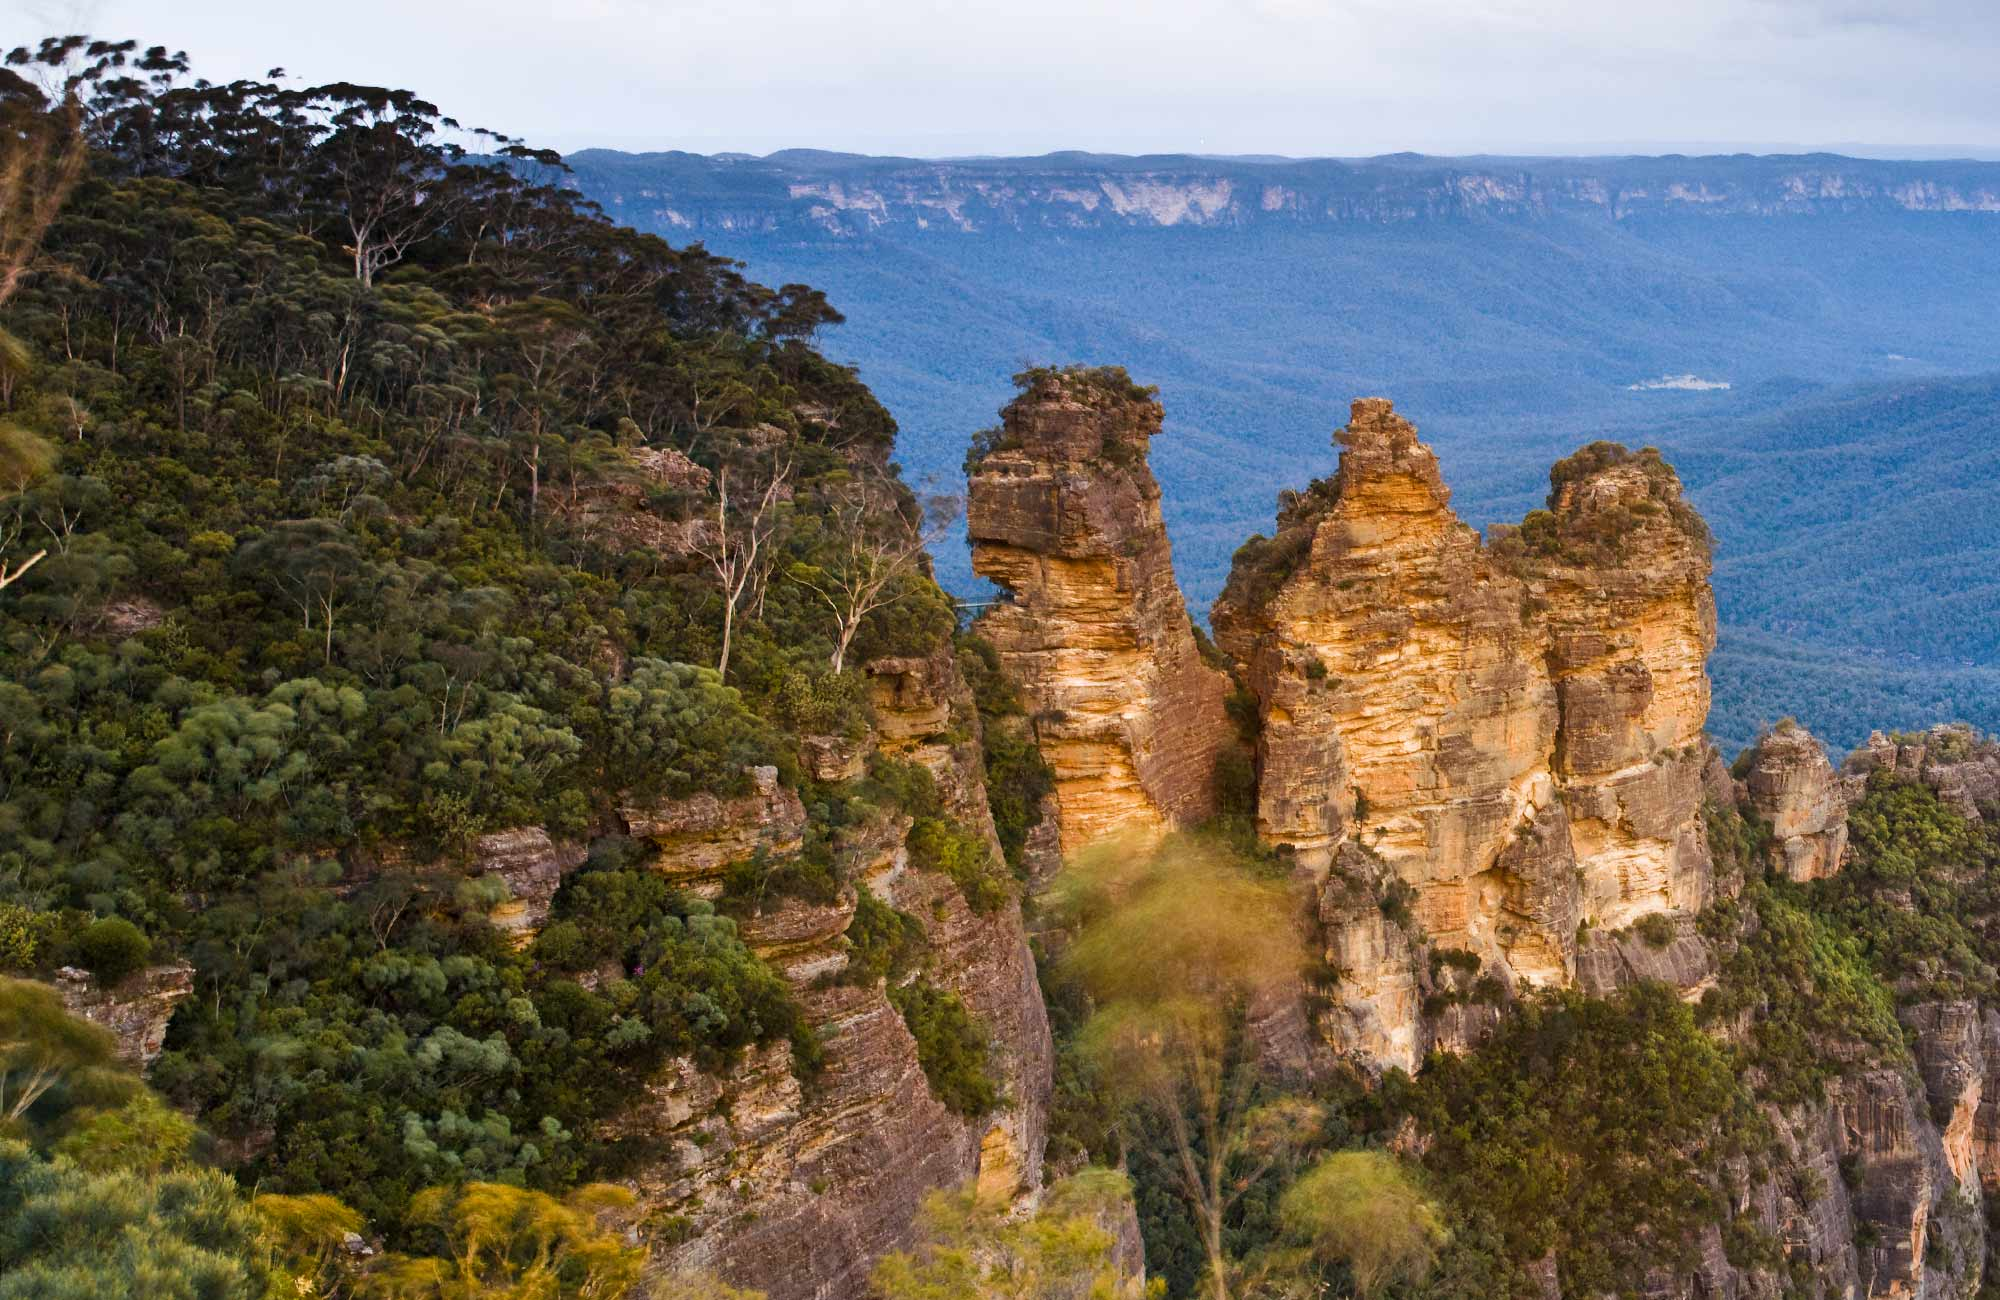 Echo Point lookout, Blue Mountains National Park. Photo: David Finnegan